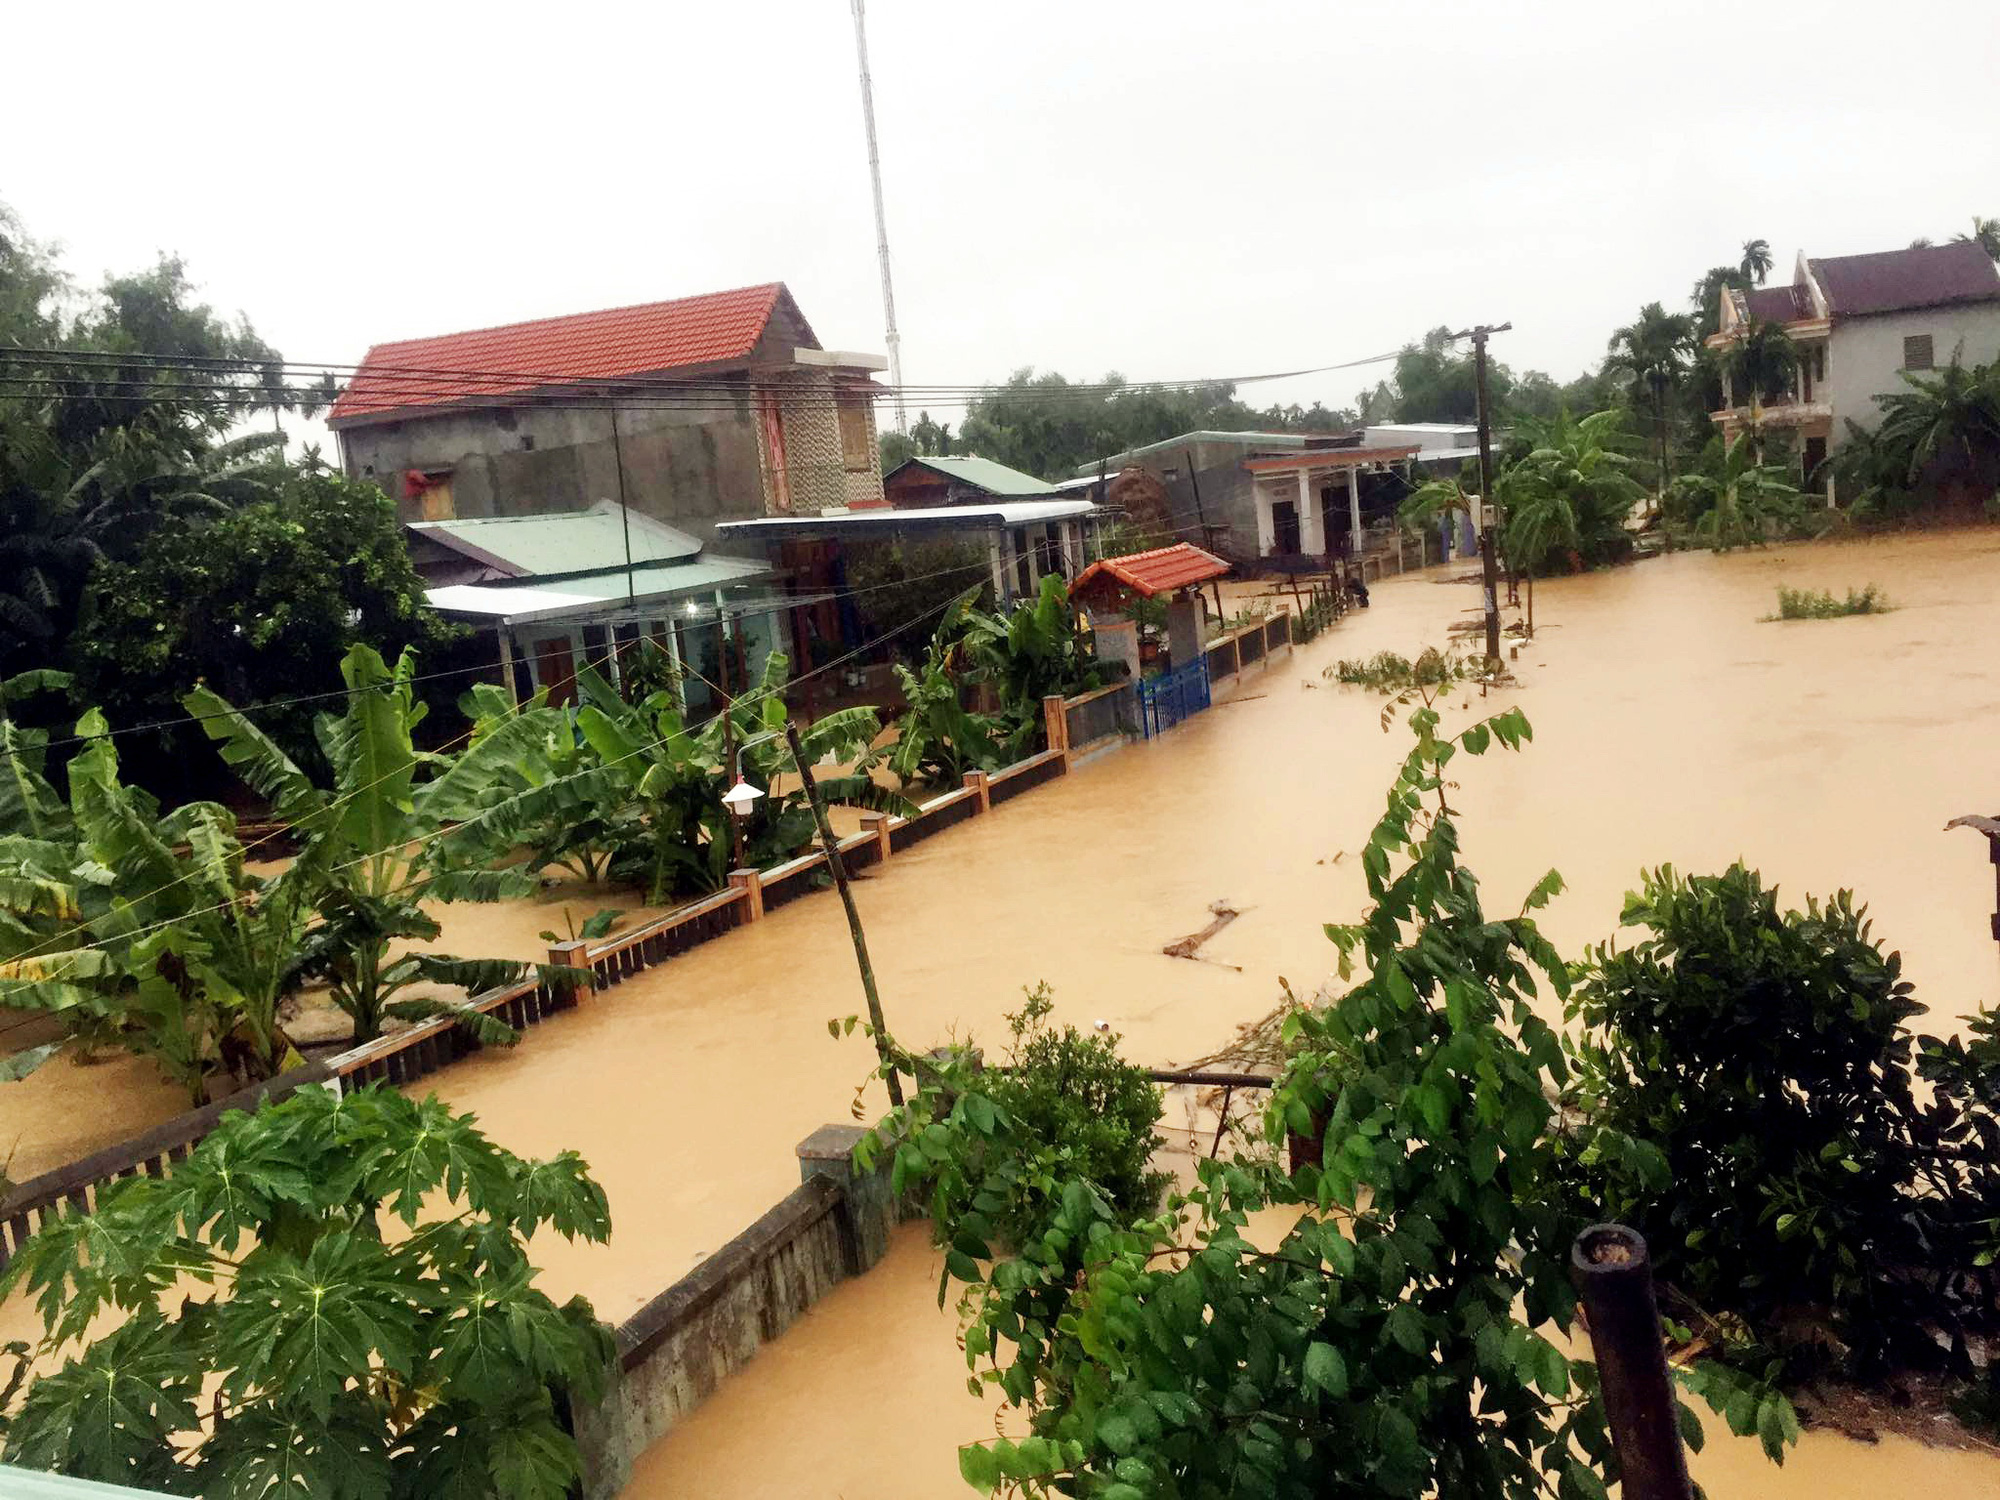 Nearly 11,000 people evacuated, 4 dead, 7 missing in central Vietnam due to serious flooding